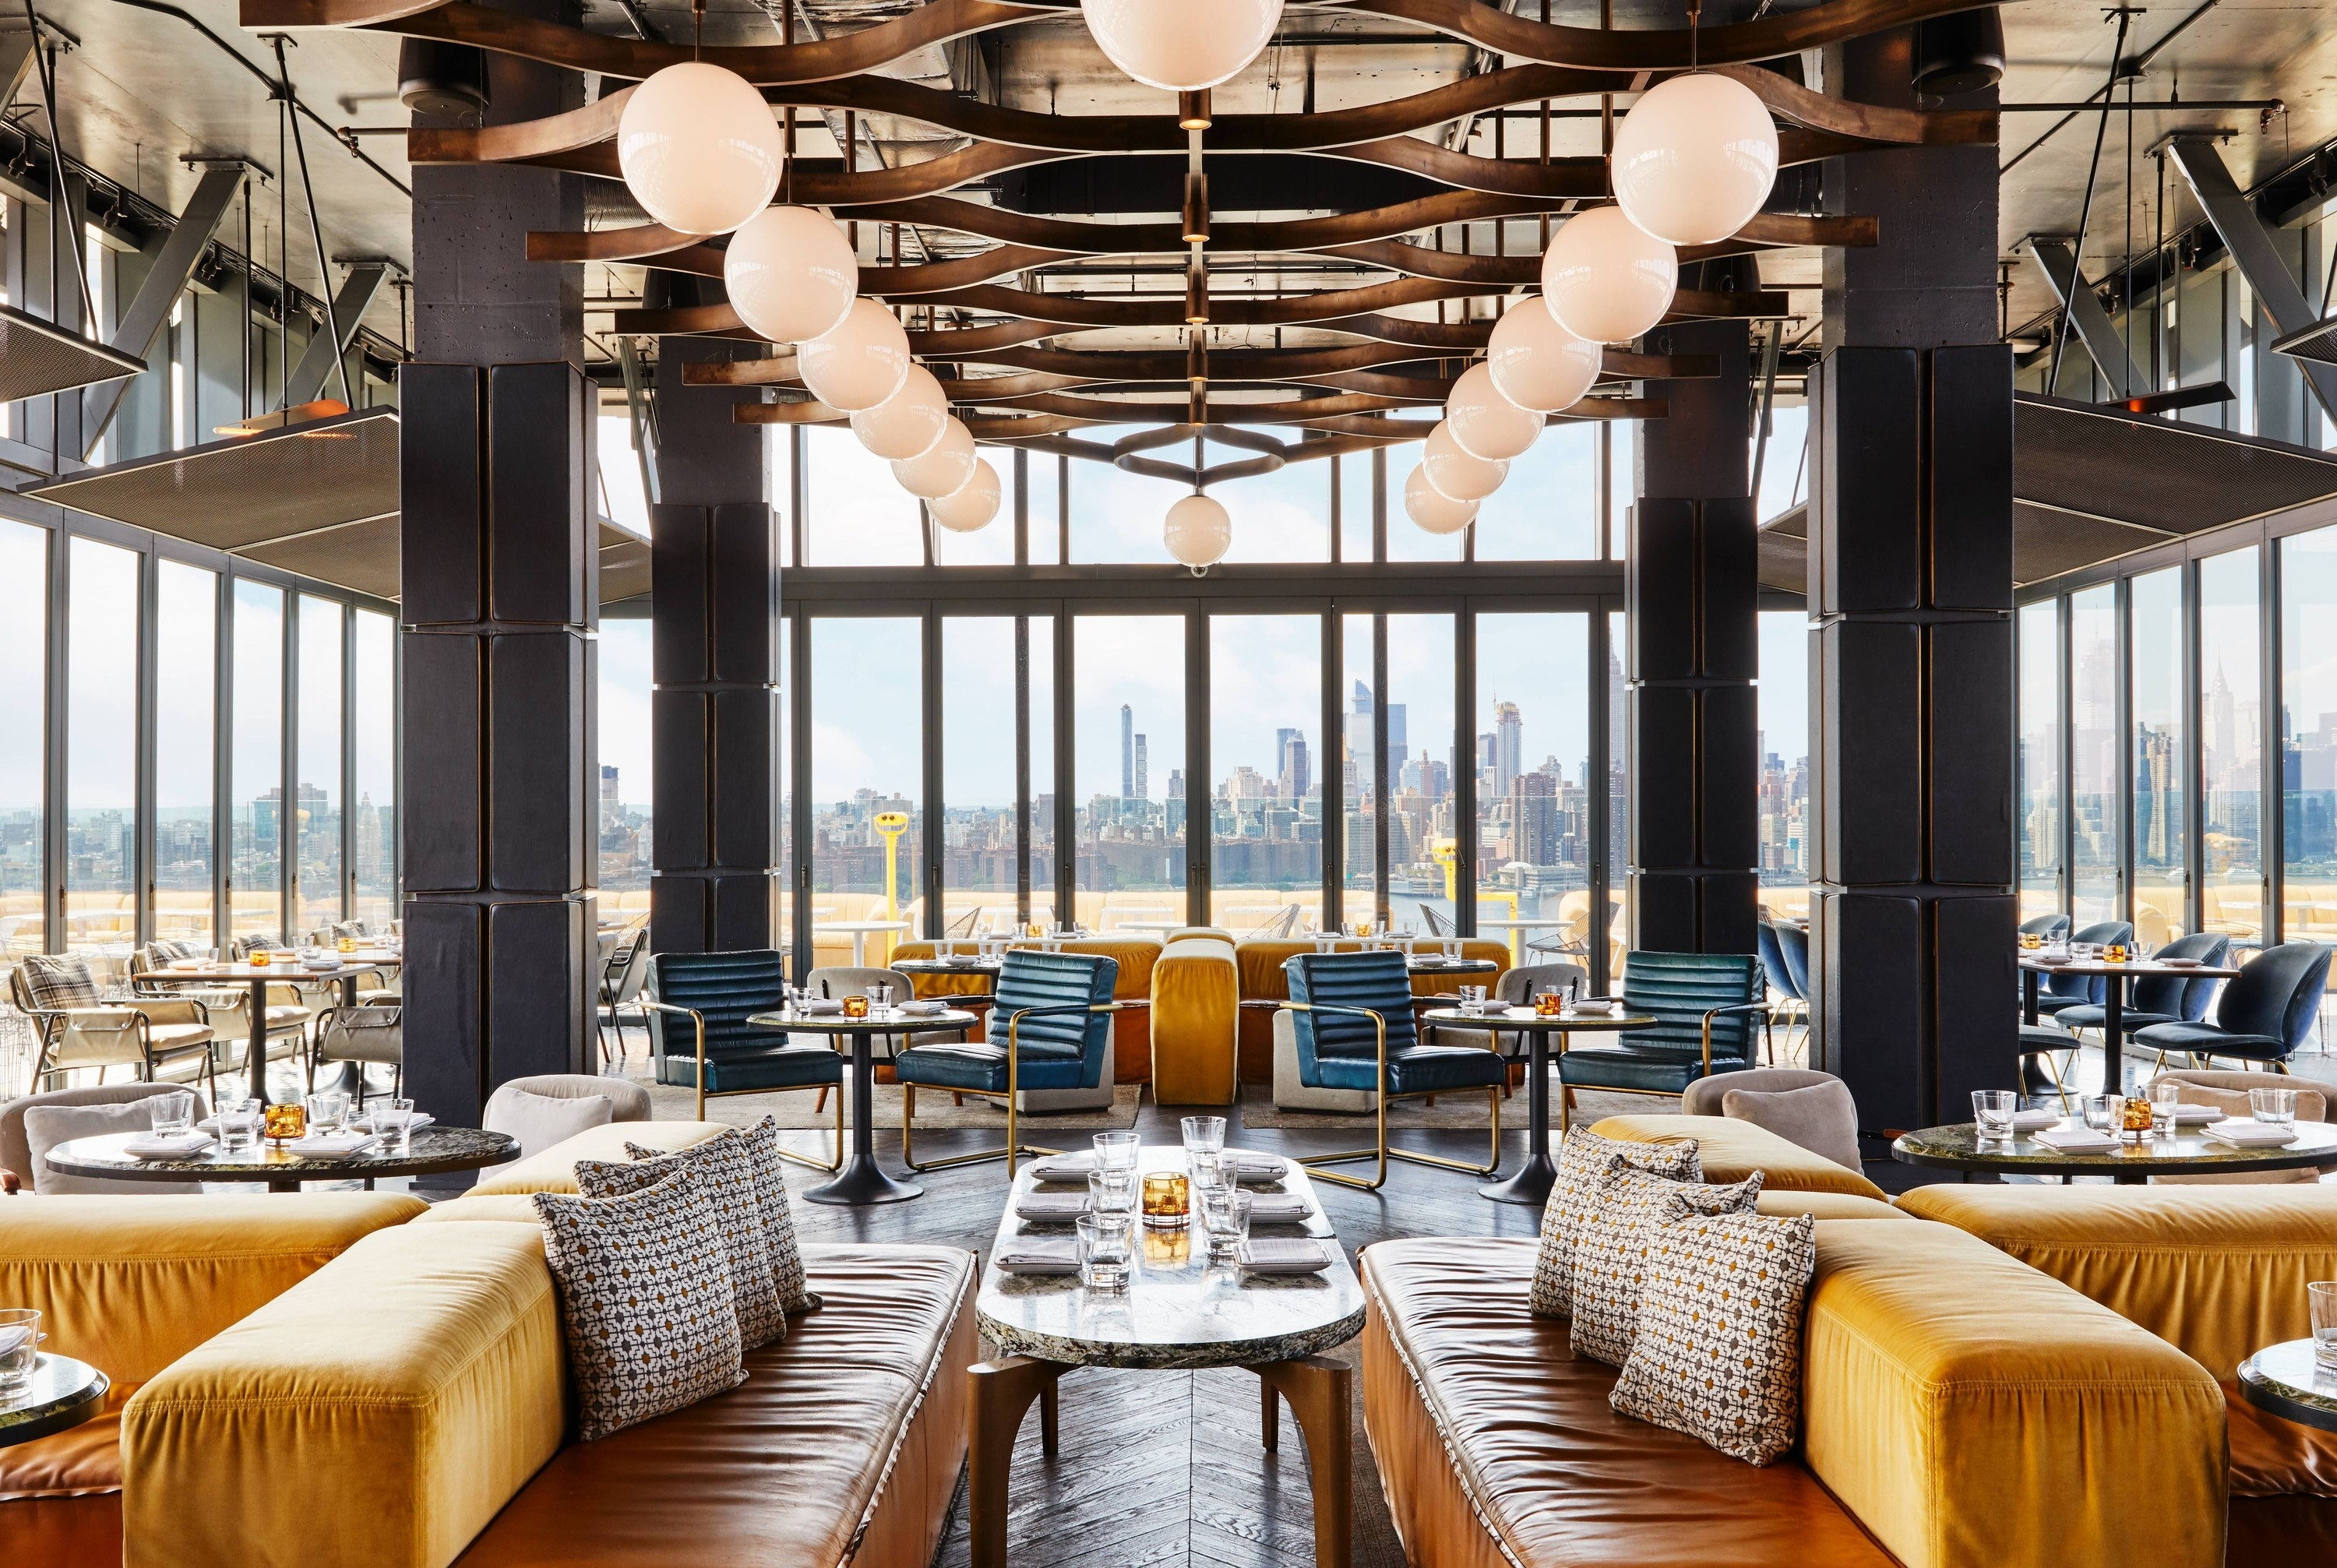 the bar overlooking the NYC skyline